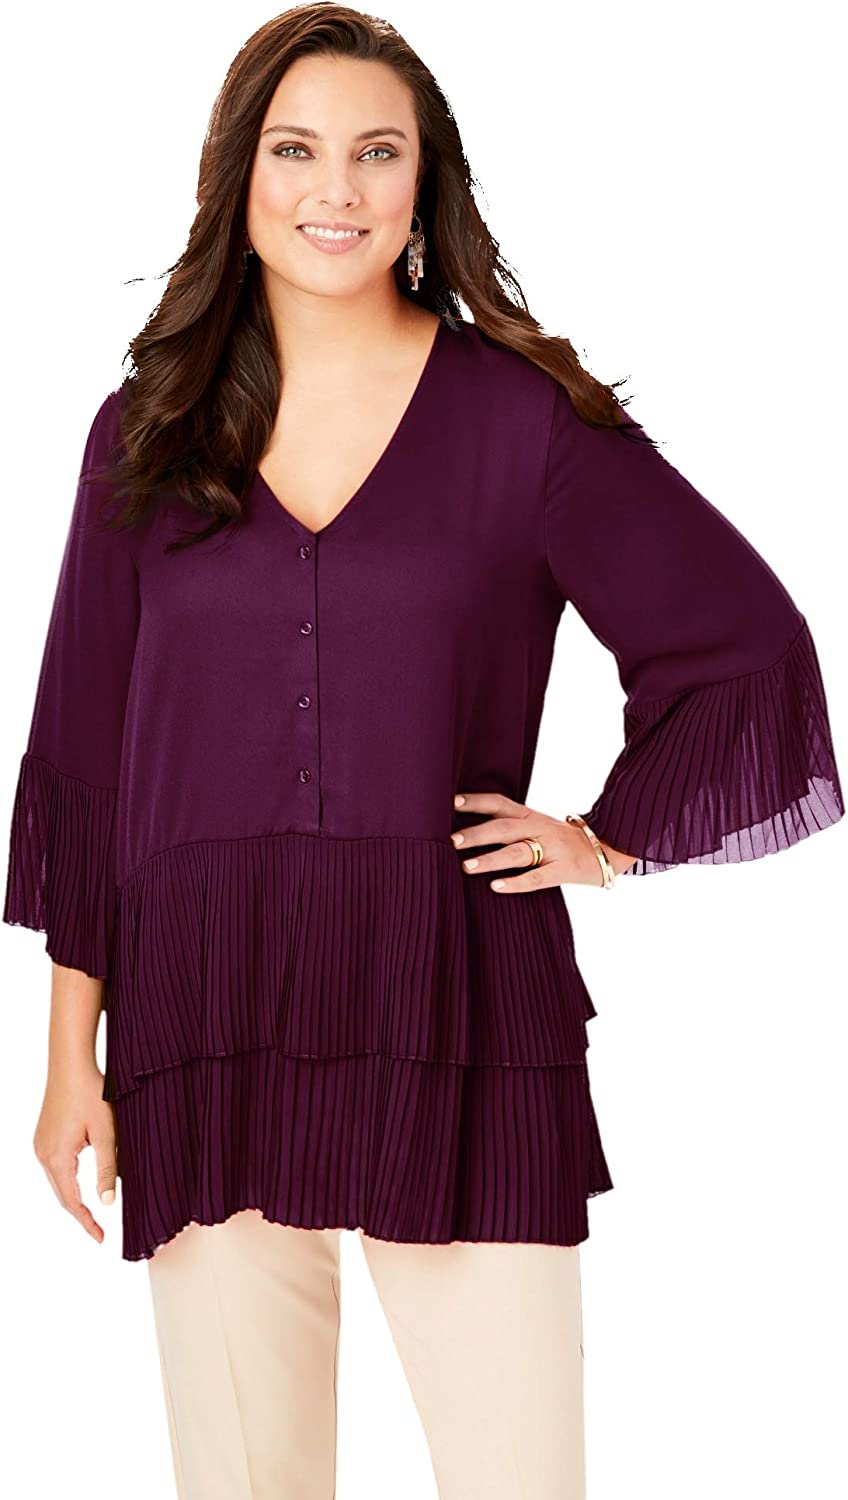 Roaman's At the price Women's Plus Size Tiered Blouse Tunic Long Shirt Popular shop is the lowest price challenge